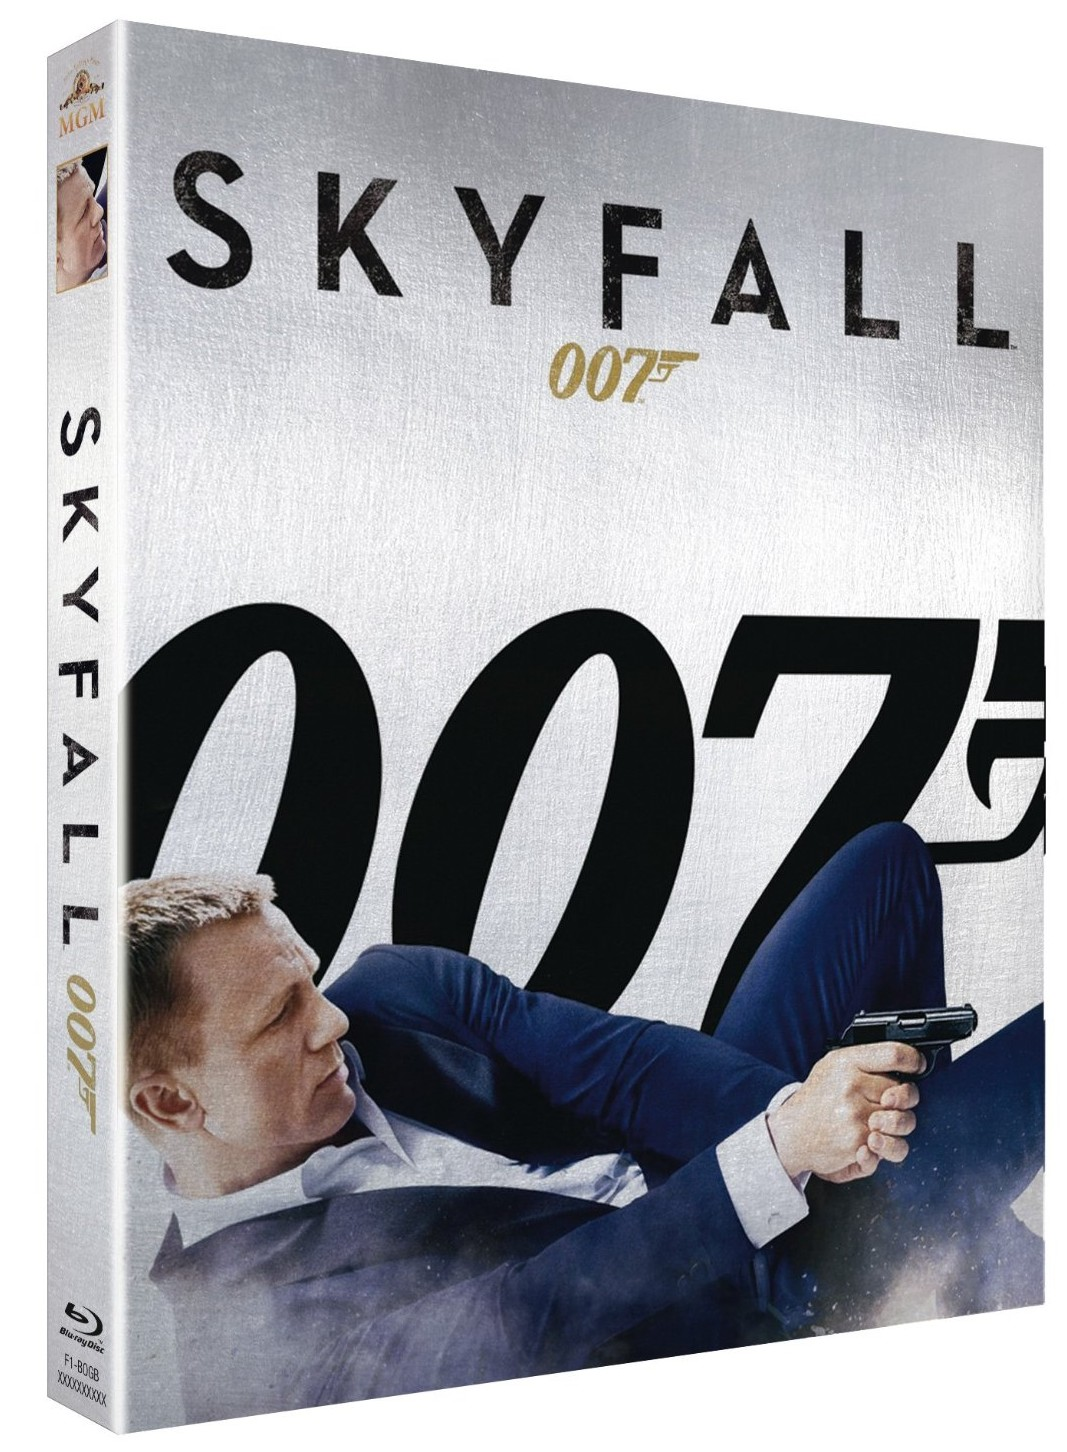 Skyfall limited edition steelbook amazon esclusiva